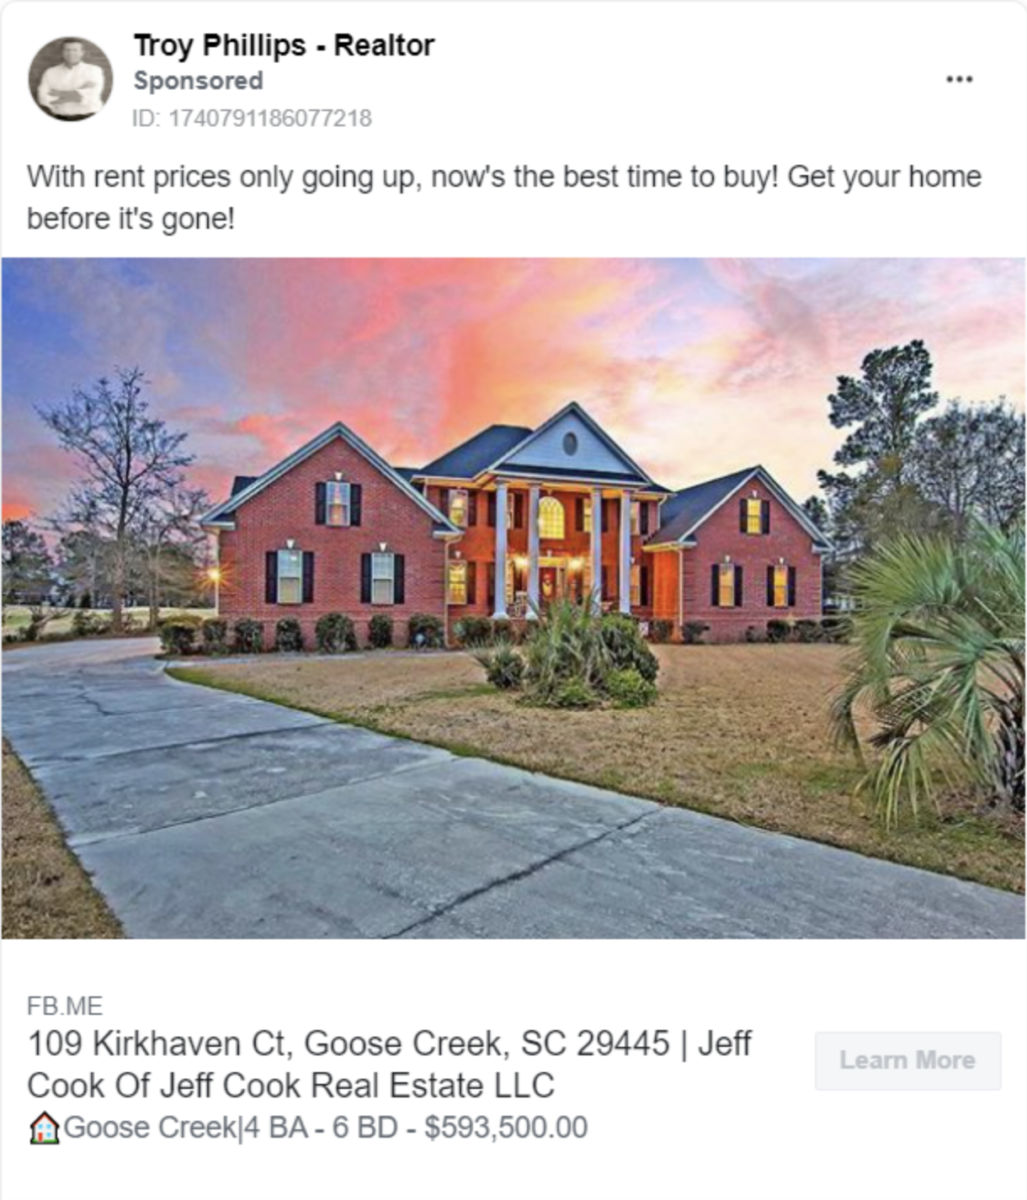 FB Ads for Real Estate lead generation